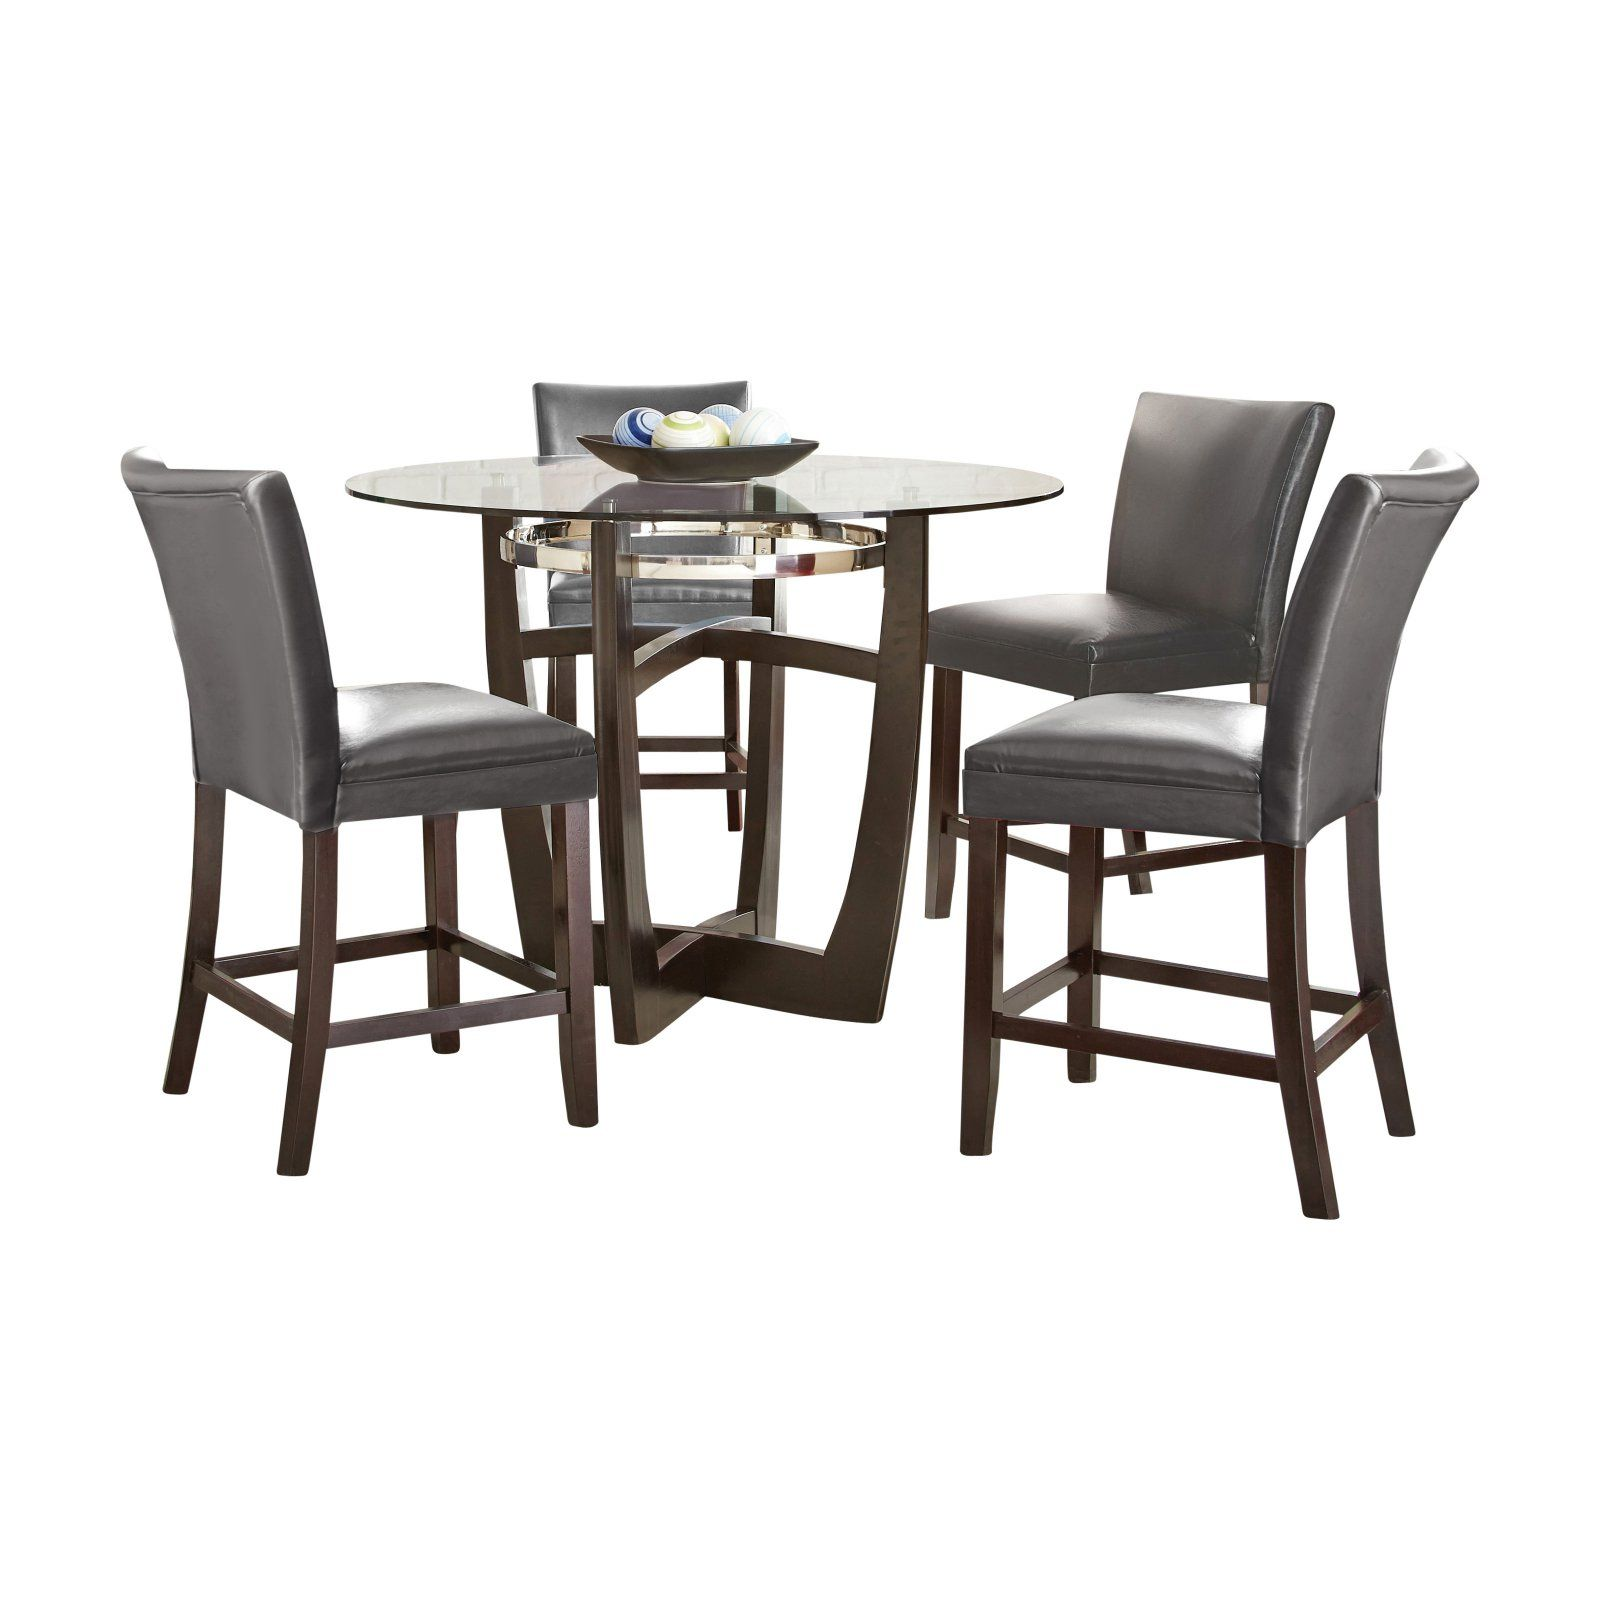 18++ Steve silver matinee dining set Trend